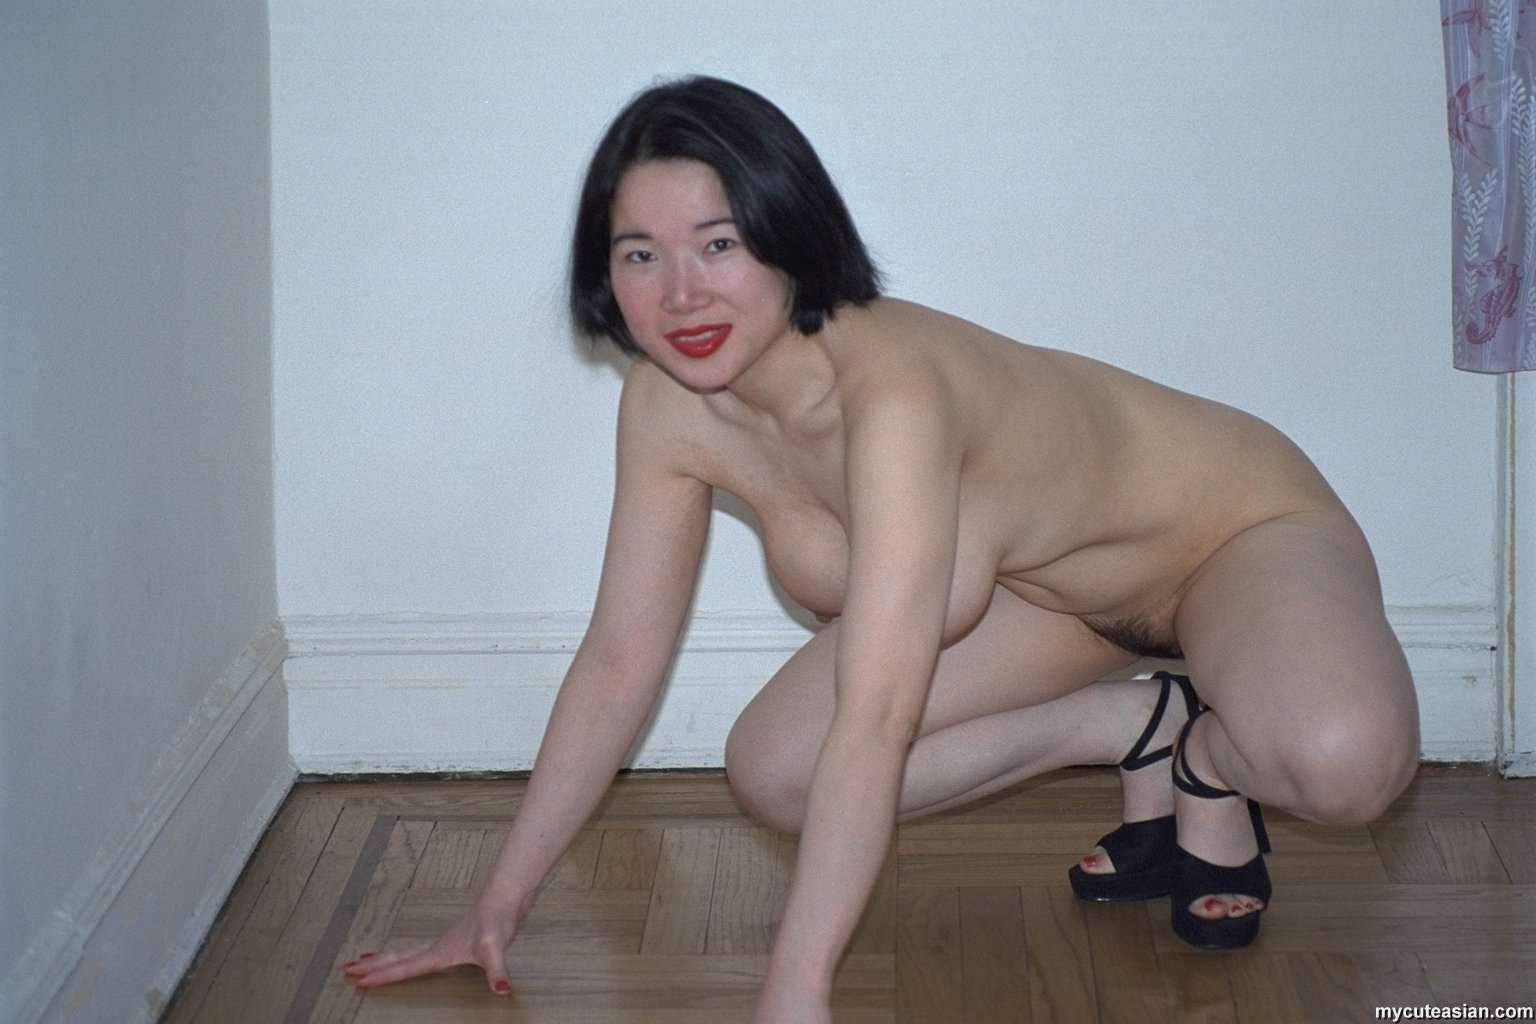 Free hottest horny milf picture wife